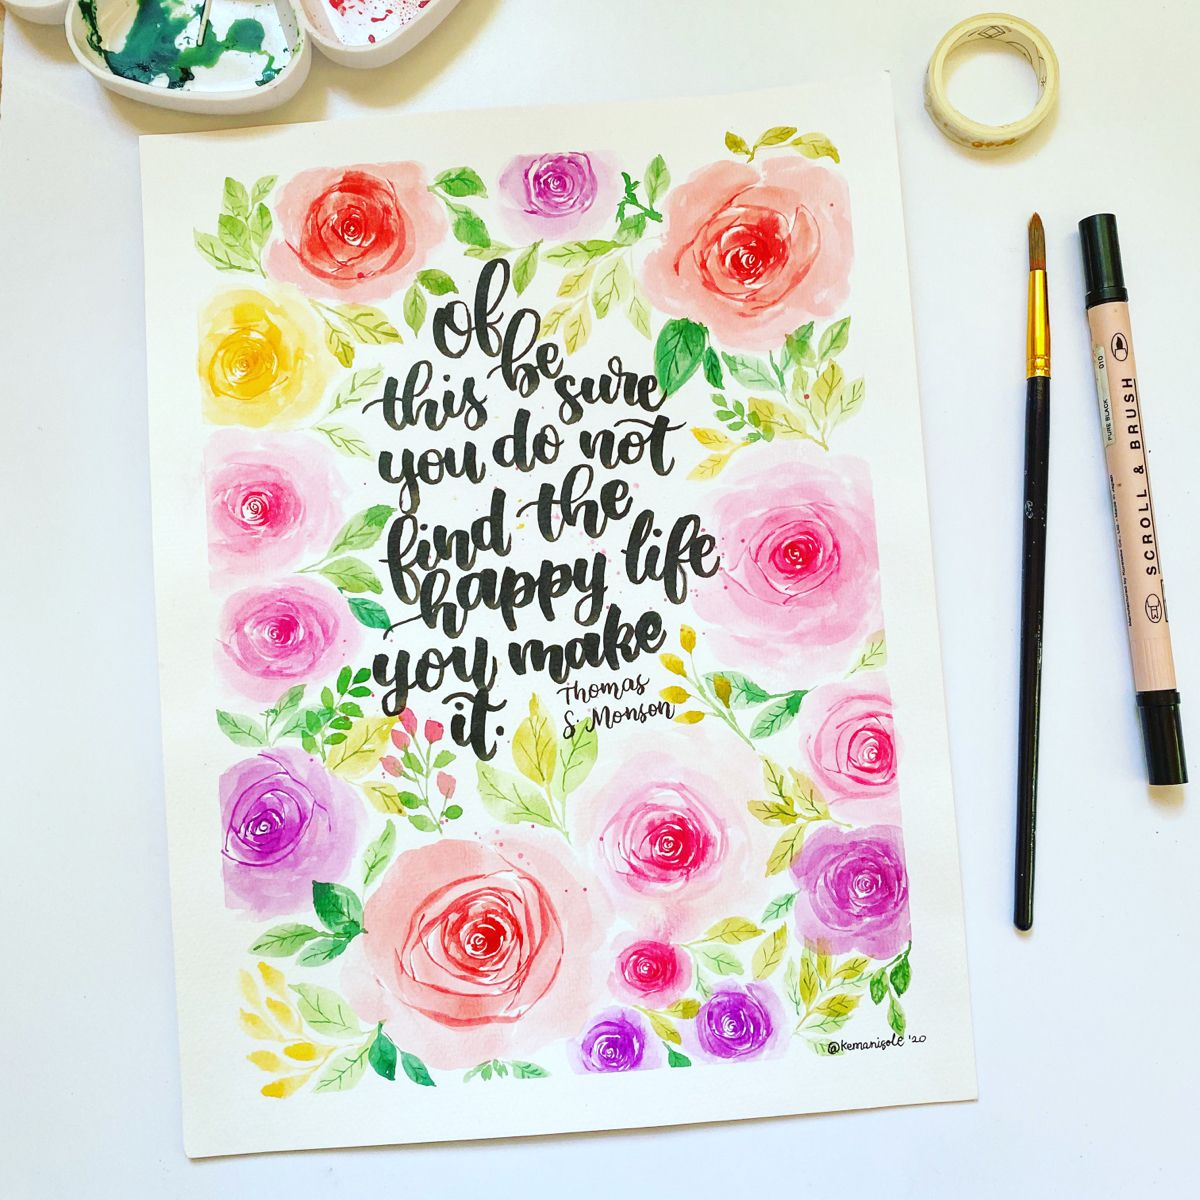 So I tried to recreate my watercolor painting of a flower wreath from years ago and here's what it looks like. You can check the whole process on my youtube channel. #sakurakoi #watercolorarts #flowerwreaths #looseflorals #worldwatercolormonth #brushlettering #brushpencalligraphy #brushpen #watercolorartideas